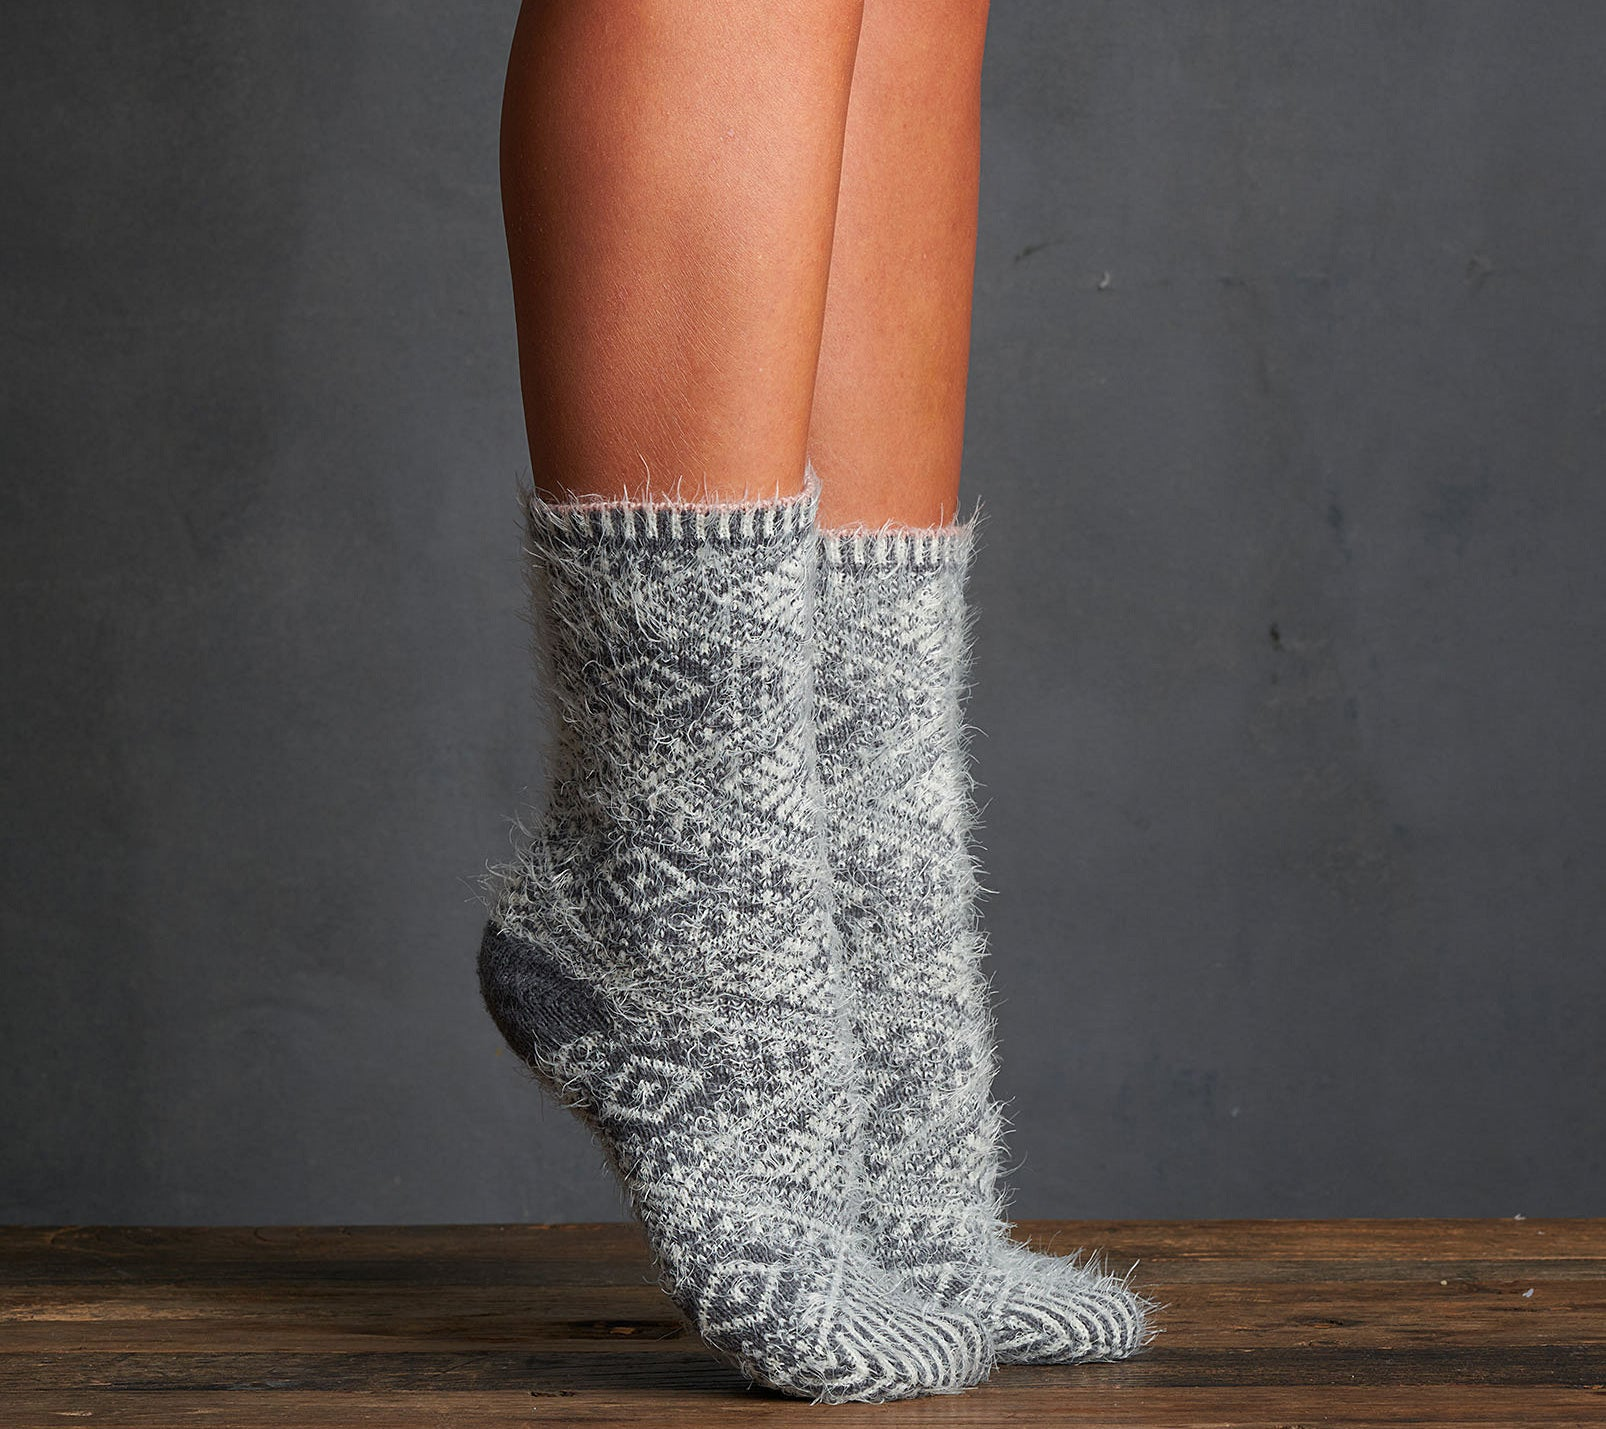 A person wearing fluffy socks